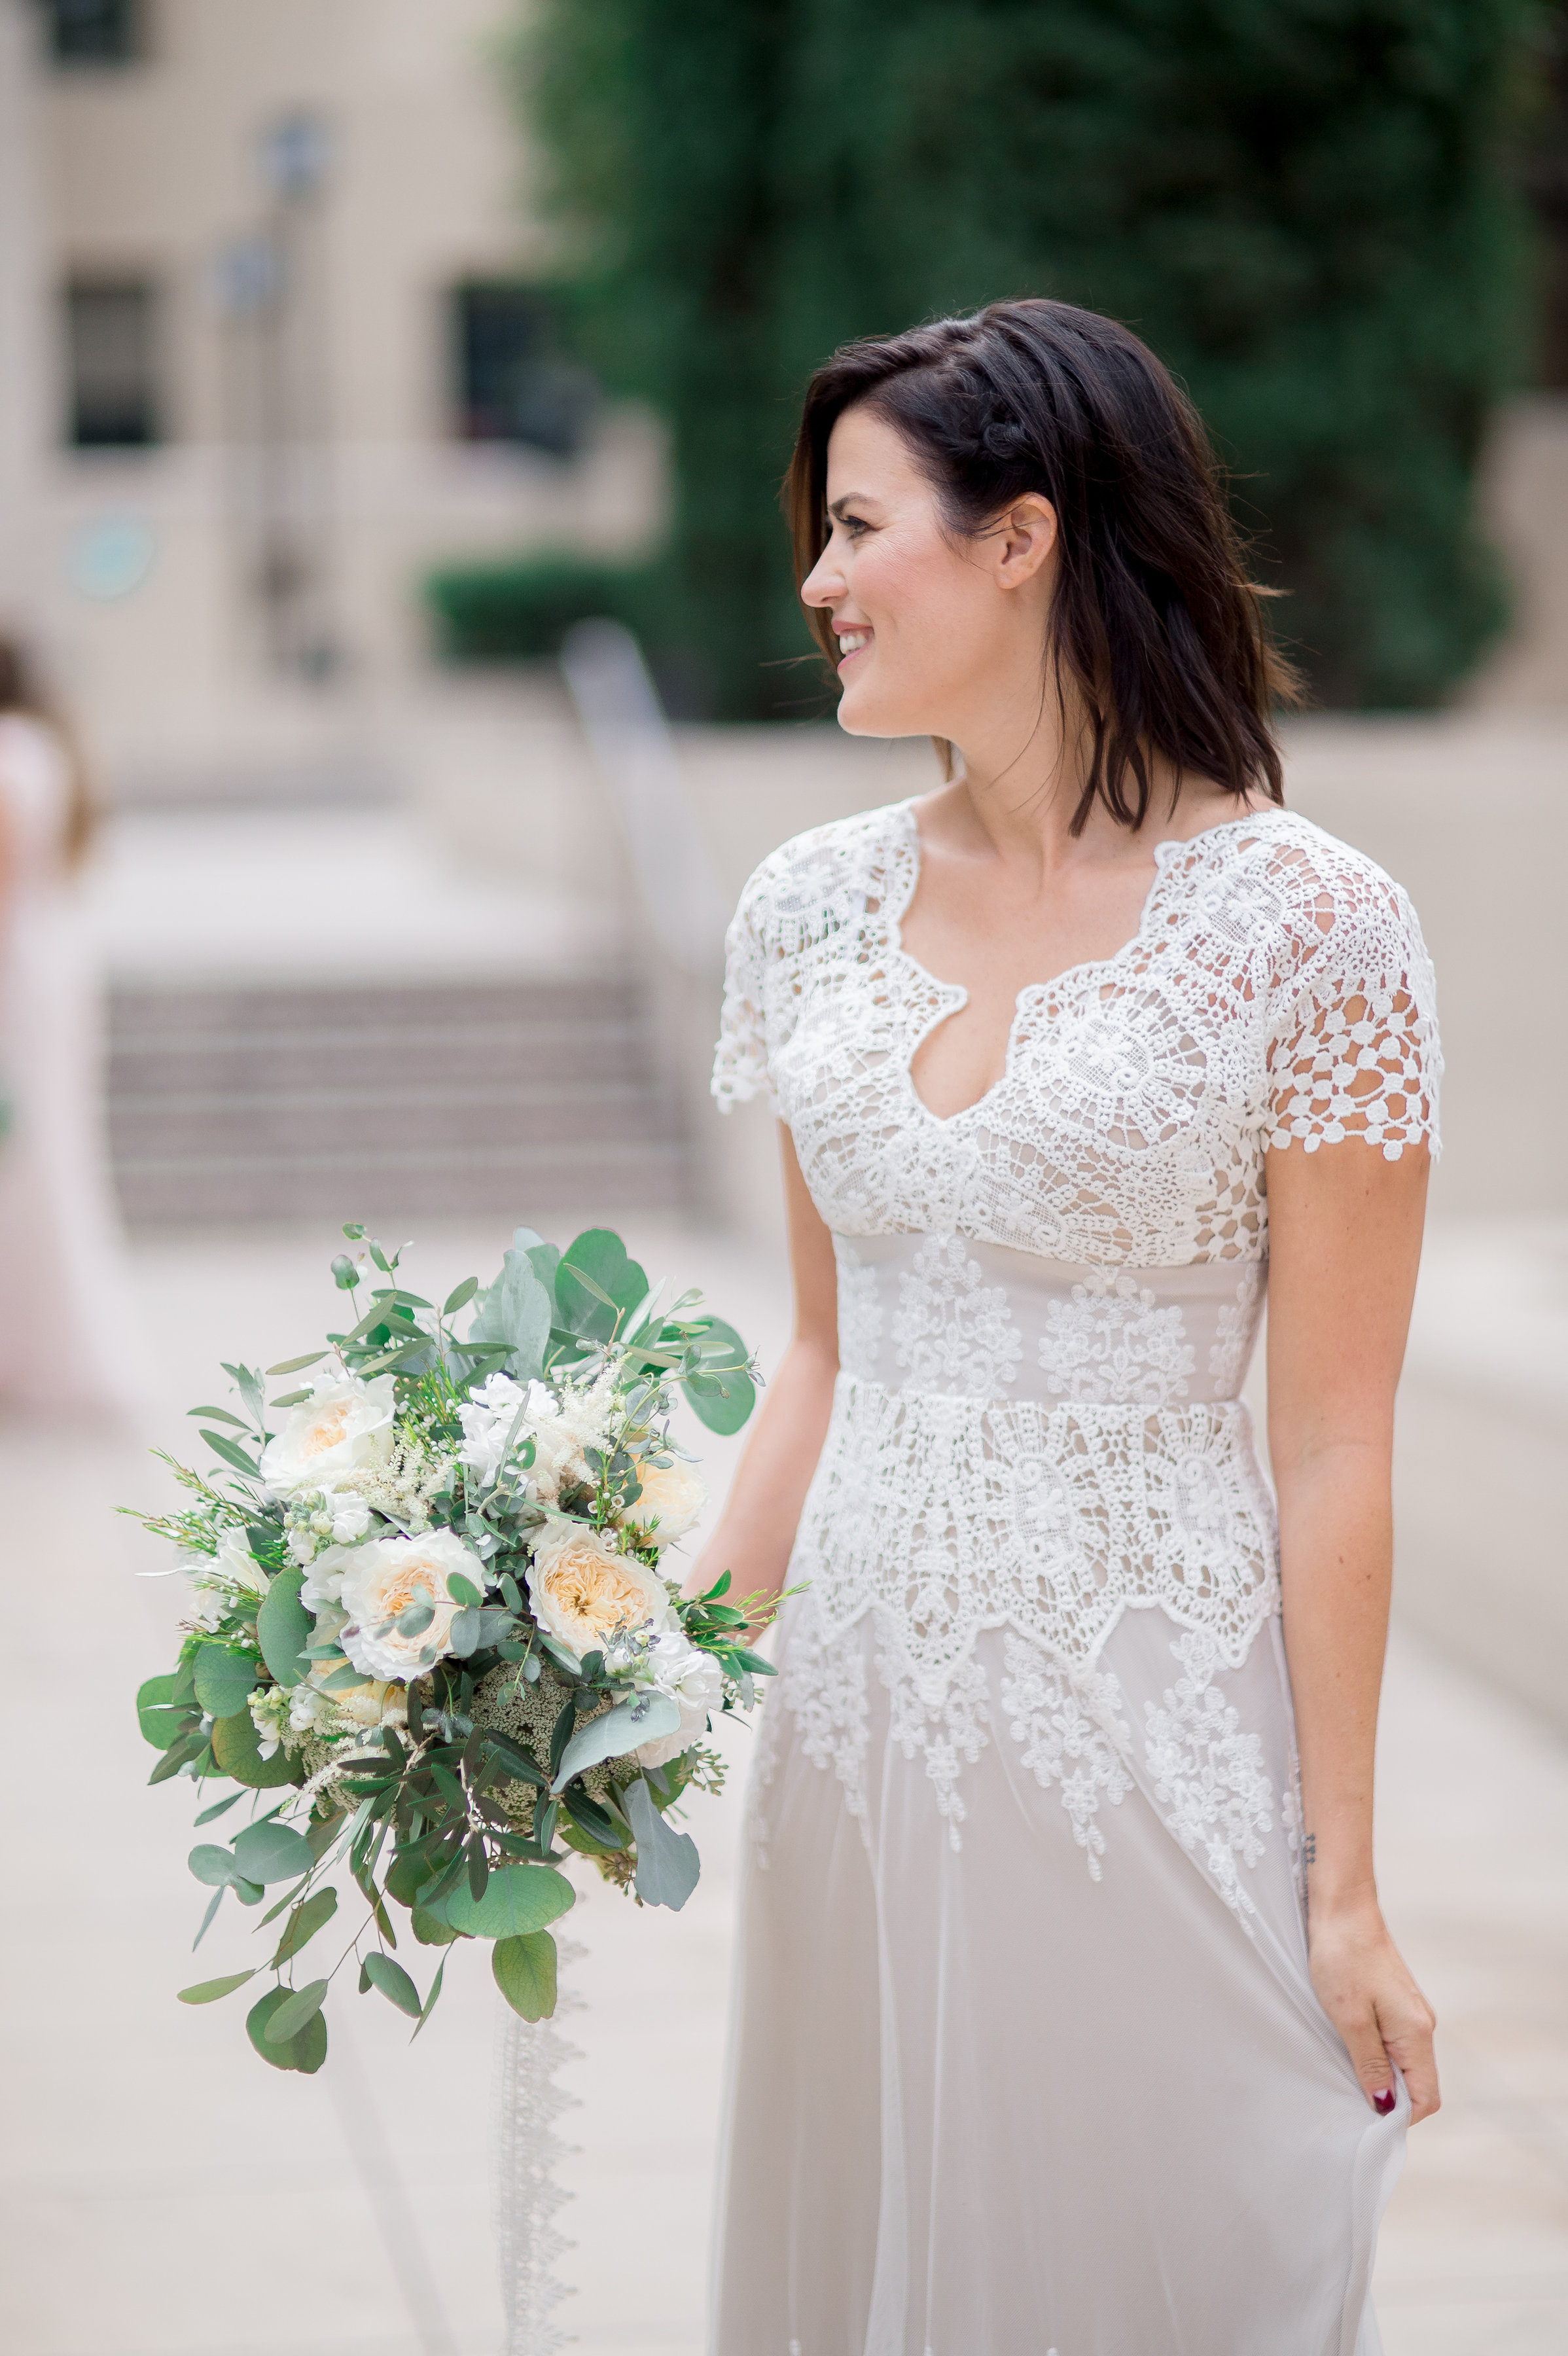 socal-wedding-consultant-best-wedding-planners-in-southern-california-cafe-pinot-wedding-planner126.jpg